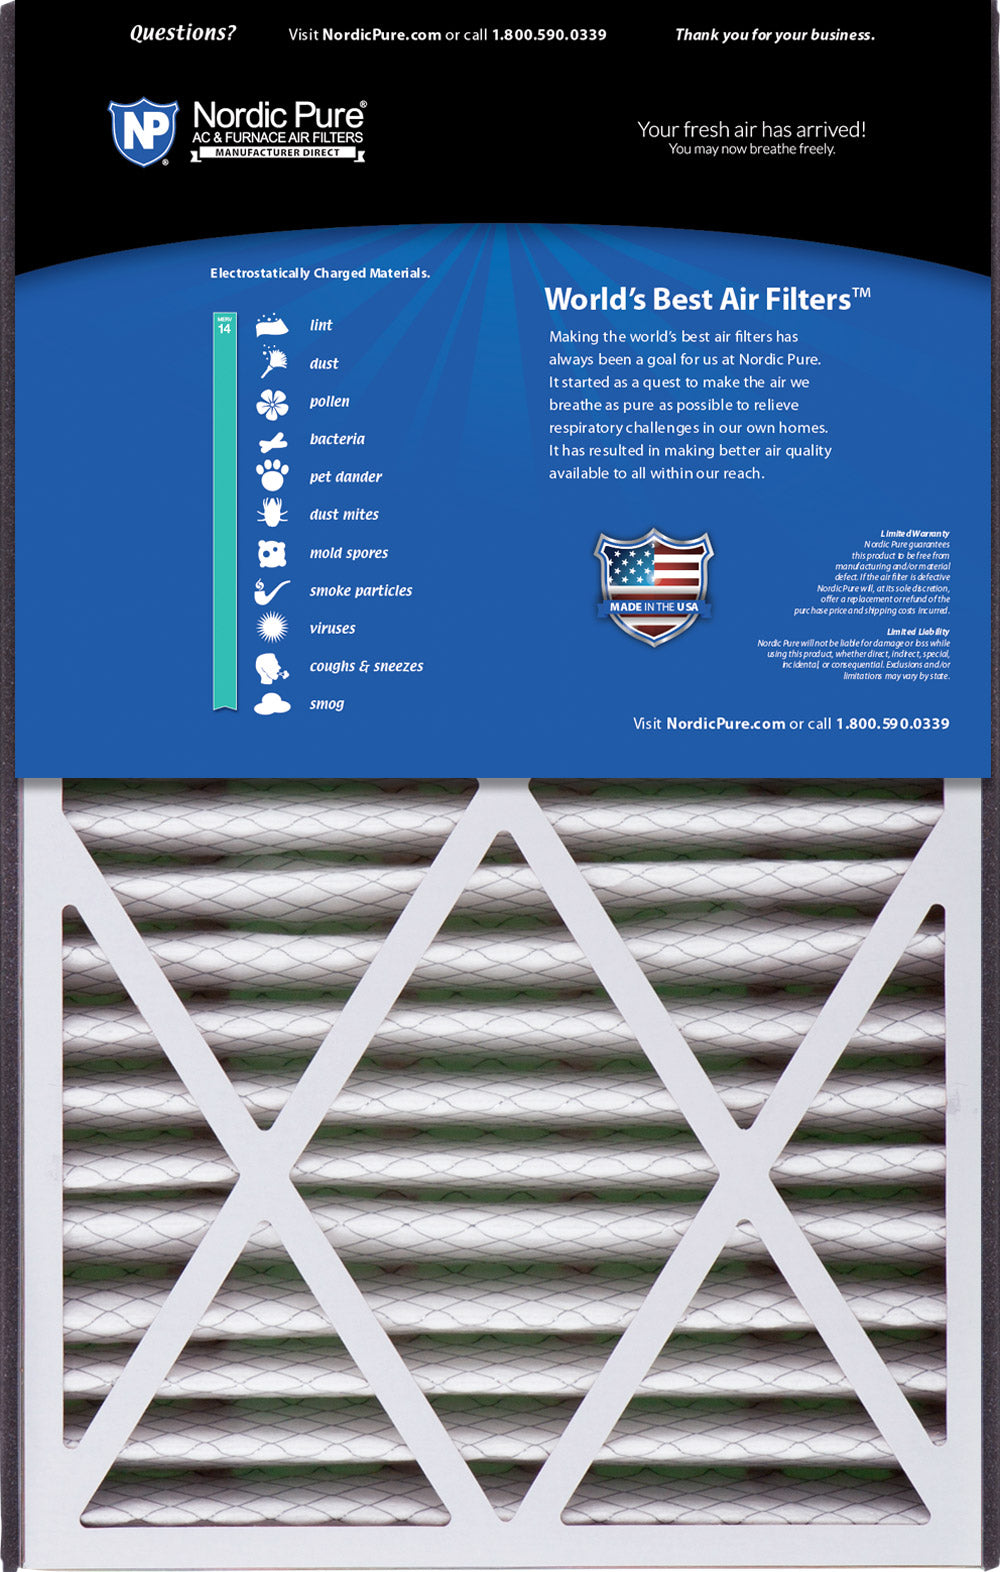 4-7//8 Actual Depth 2 Pack MERV 15 Plus Carbon Trion Bear 266649-105 Replacement Pleated AC Furnace Air Filter Nordic Pure 16x25x5